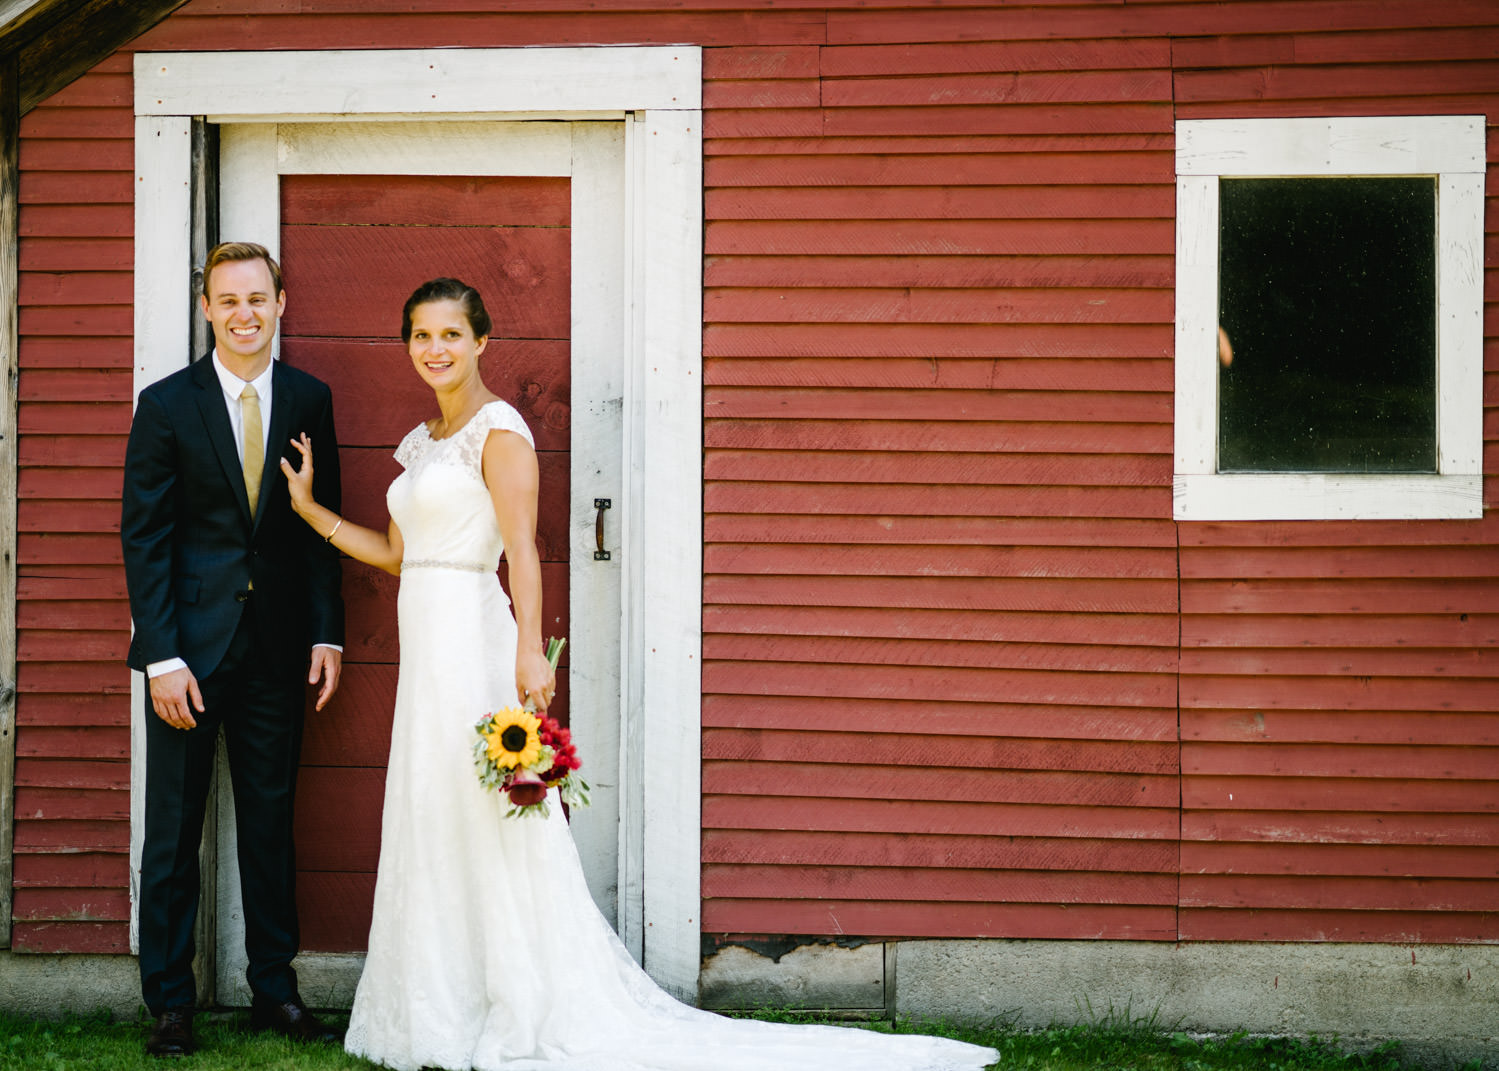 vermontbarn_destinationweddingphotographer_austendiamondphotography-1